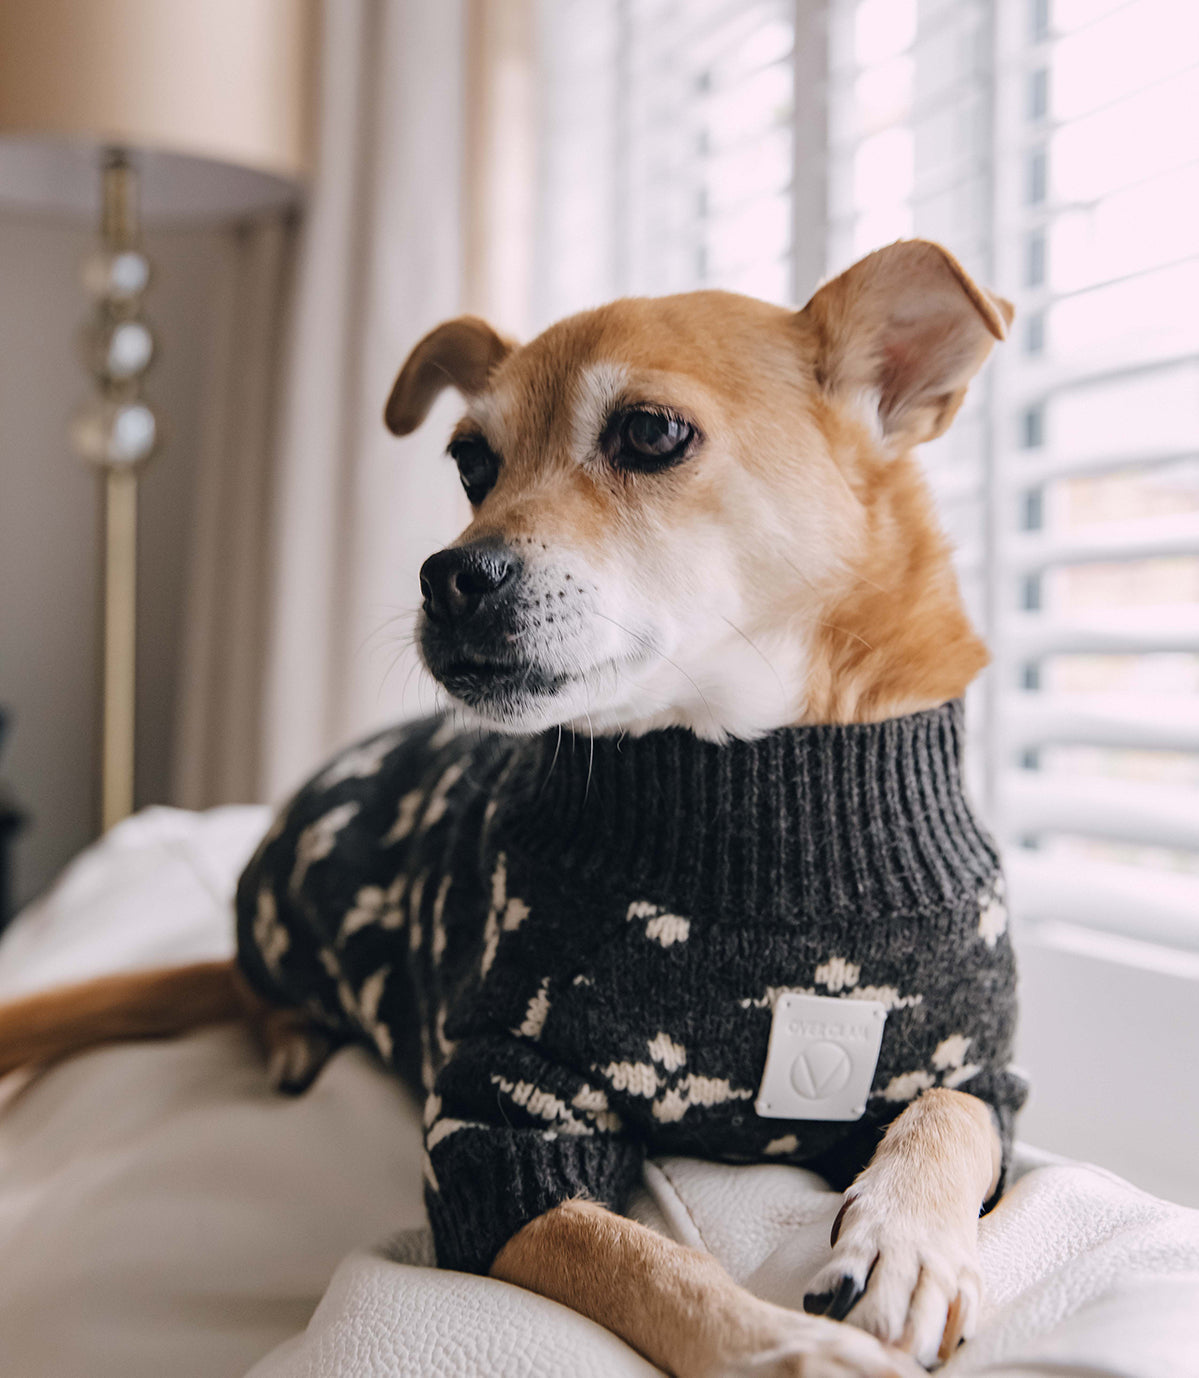 A dog with an OverGlam jumper posing on a couch